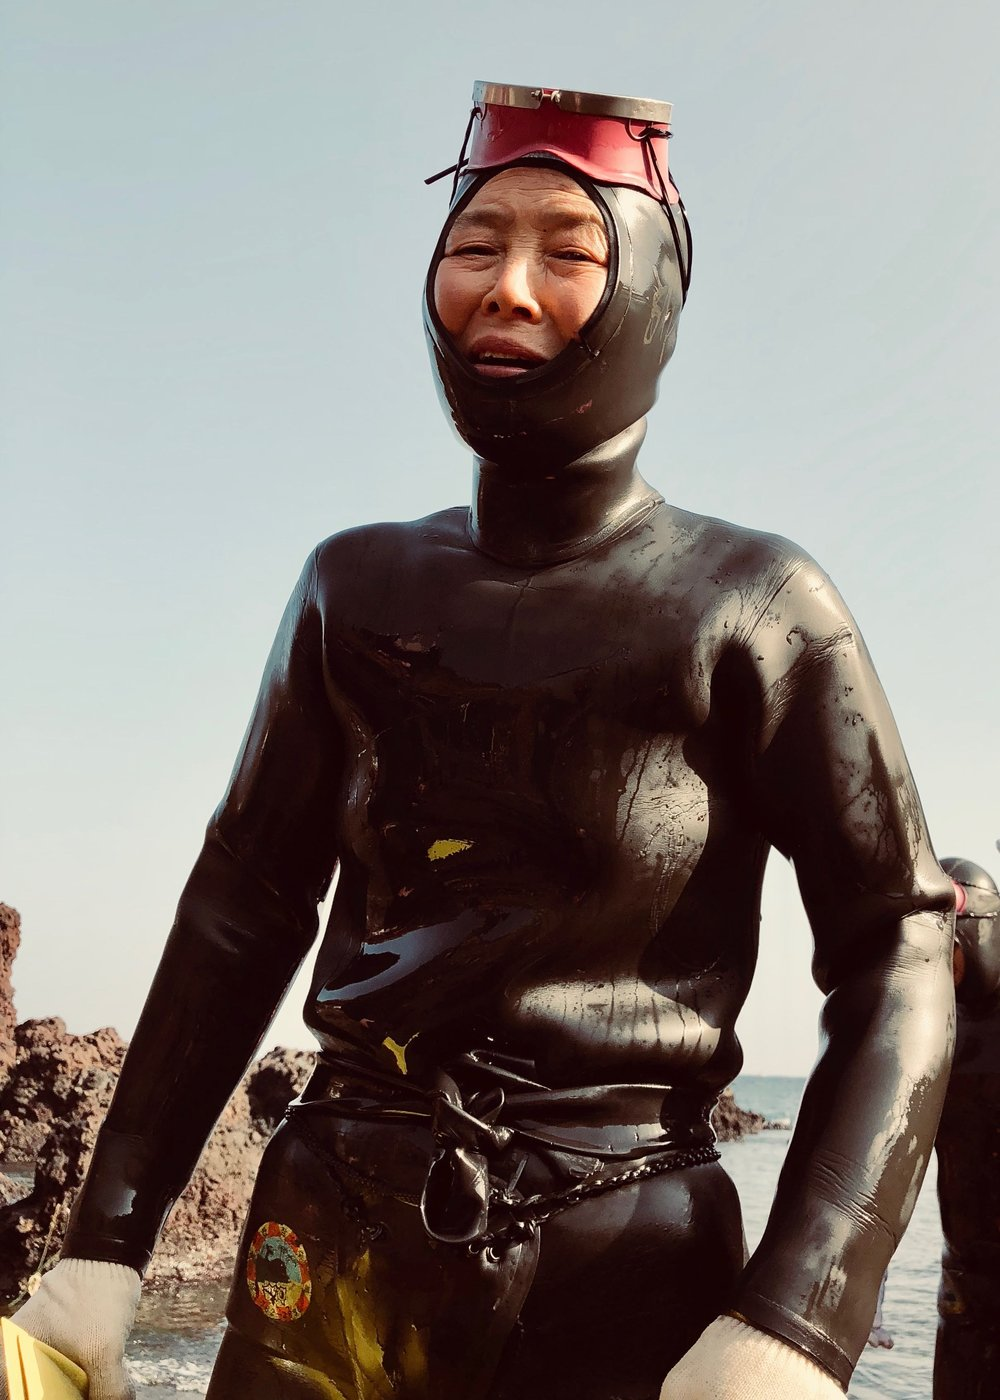 female diver in wetsuit standing on the beach near rocks